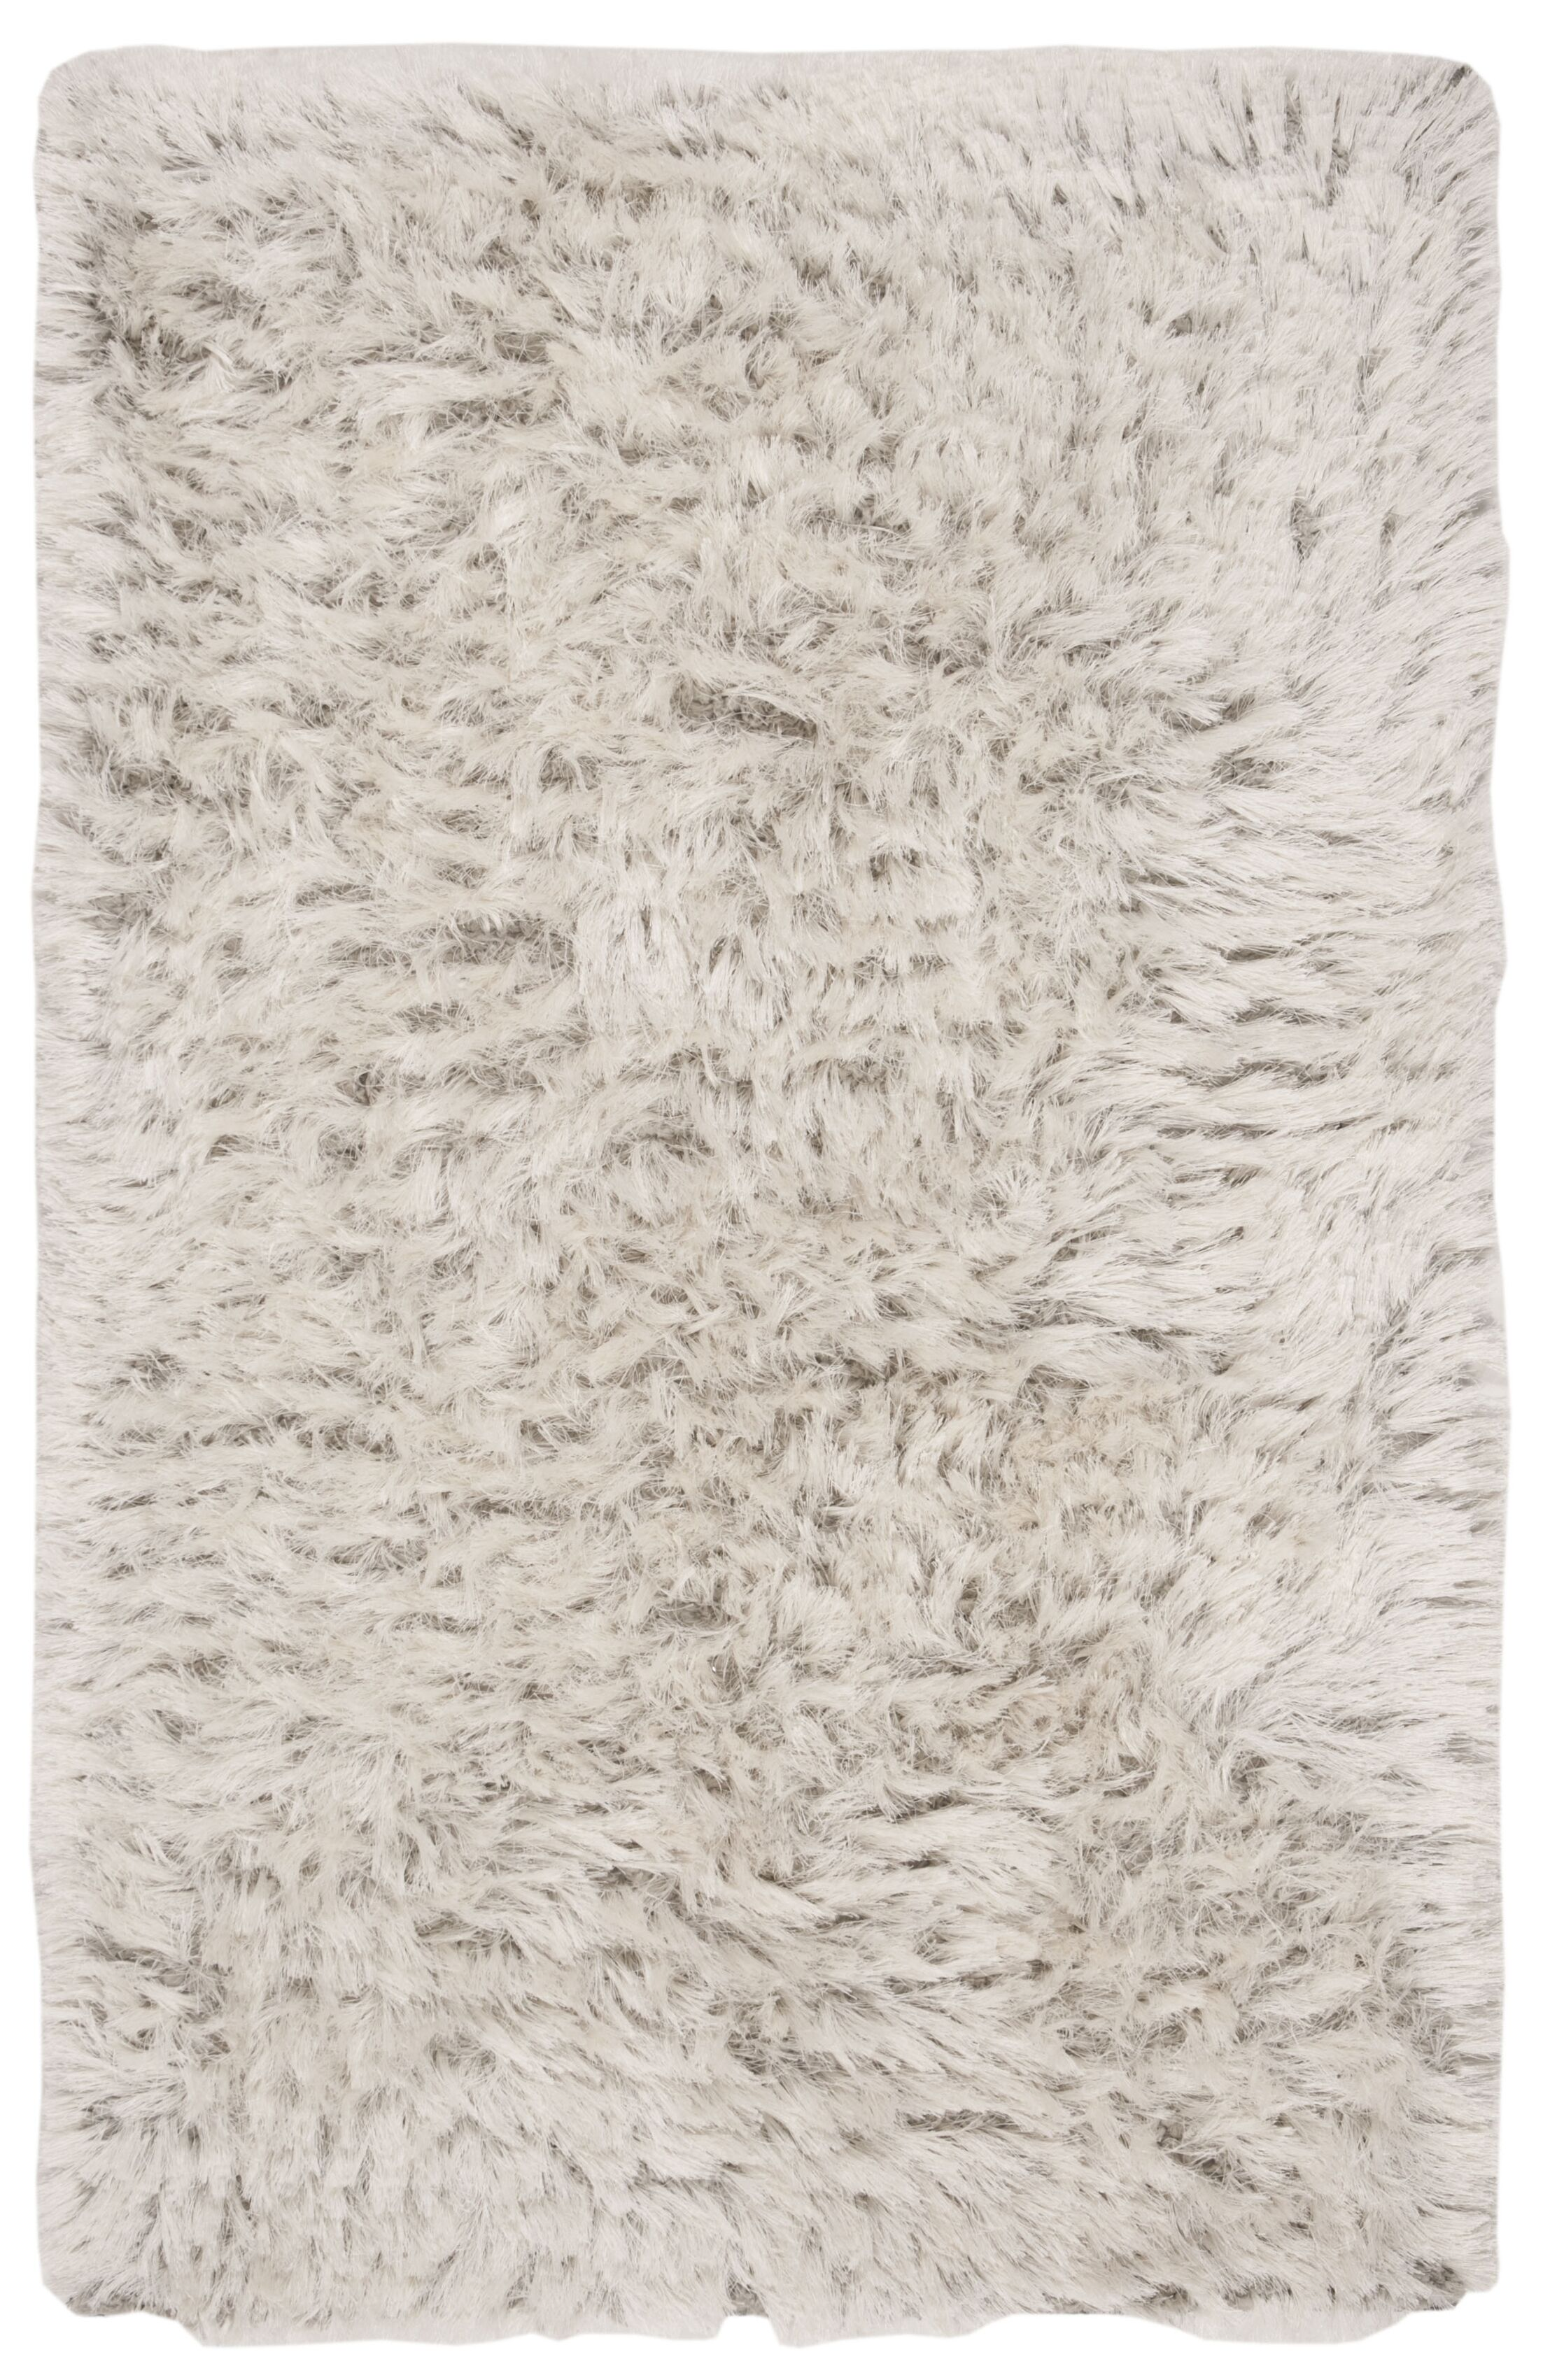 Moultrie Hand-Tufted Light Gray Area Rug Rug Size: Rectangle 3' X 5'